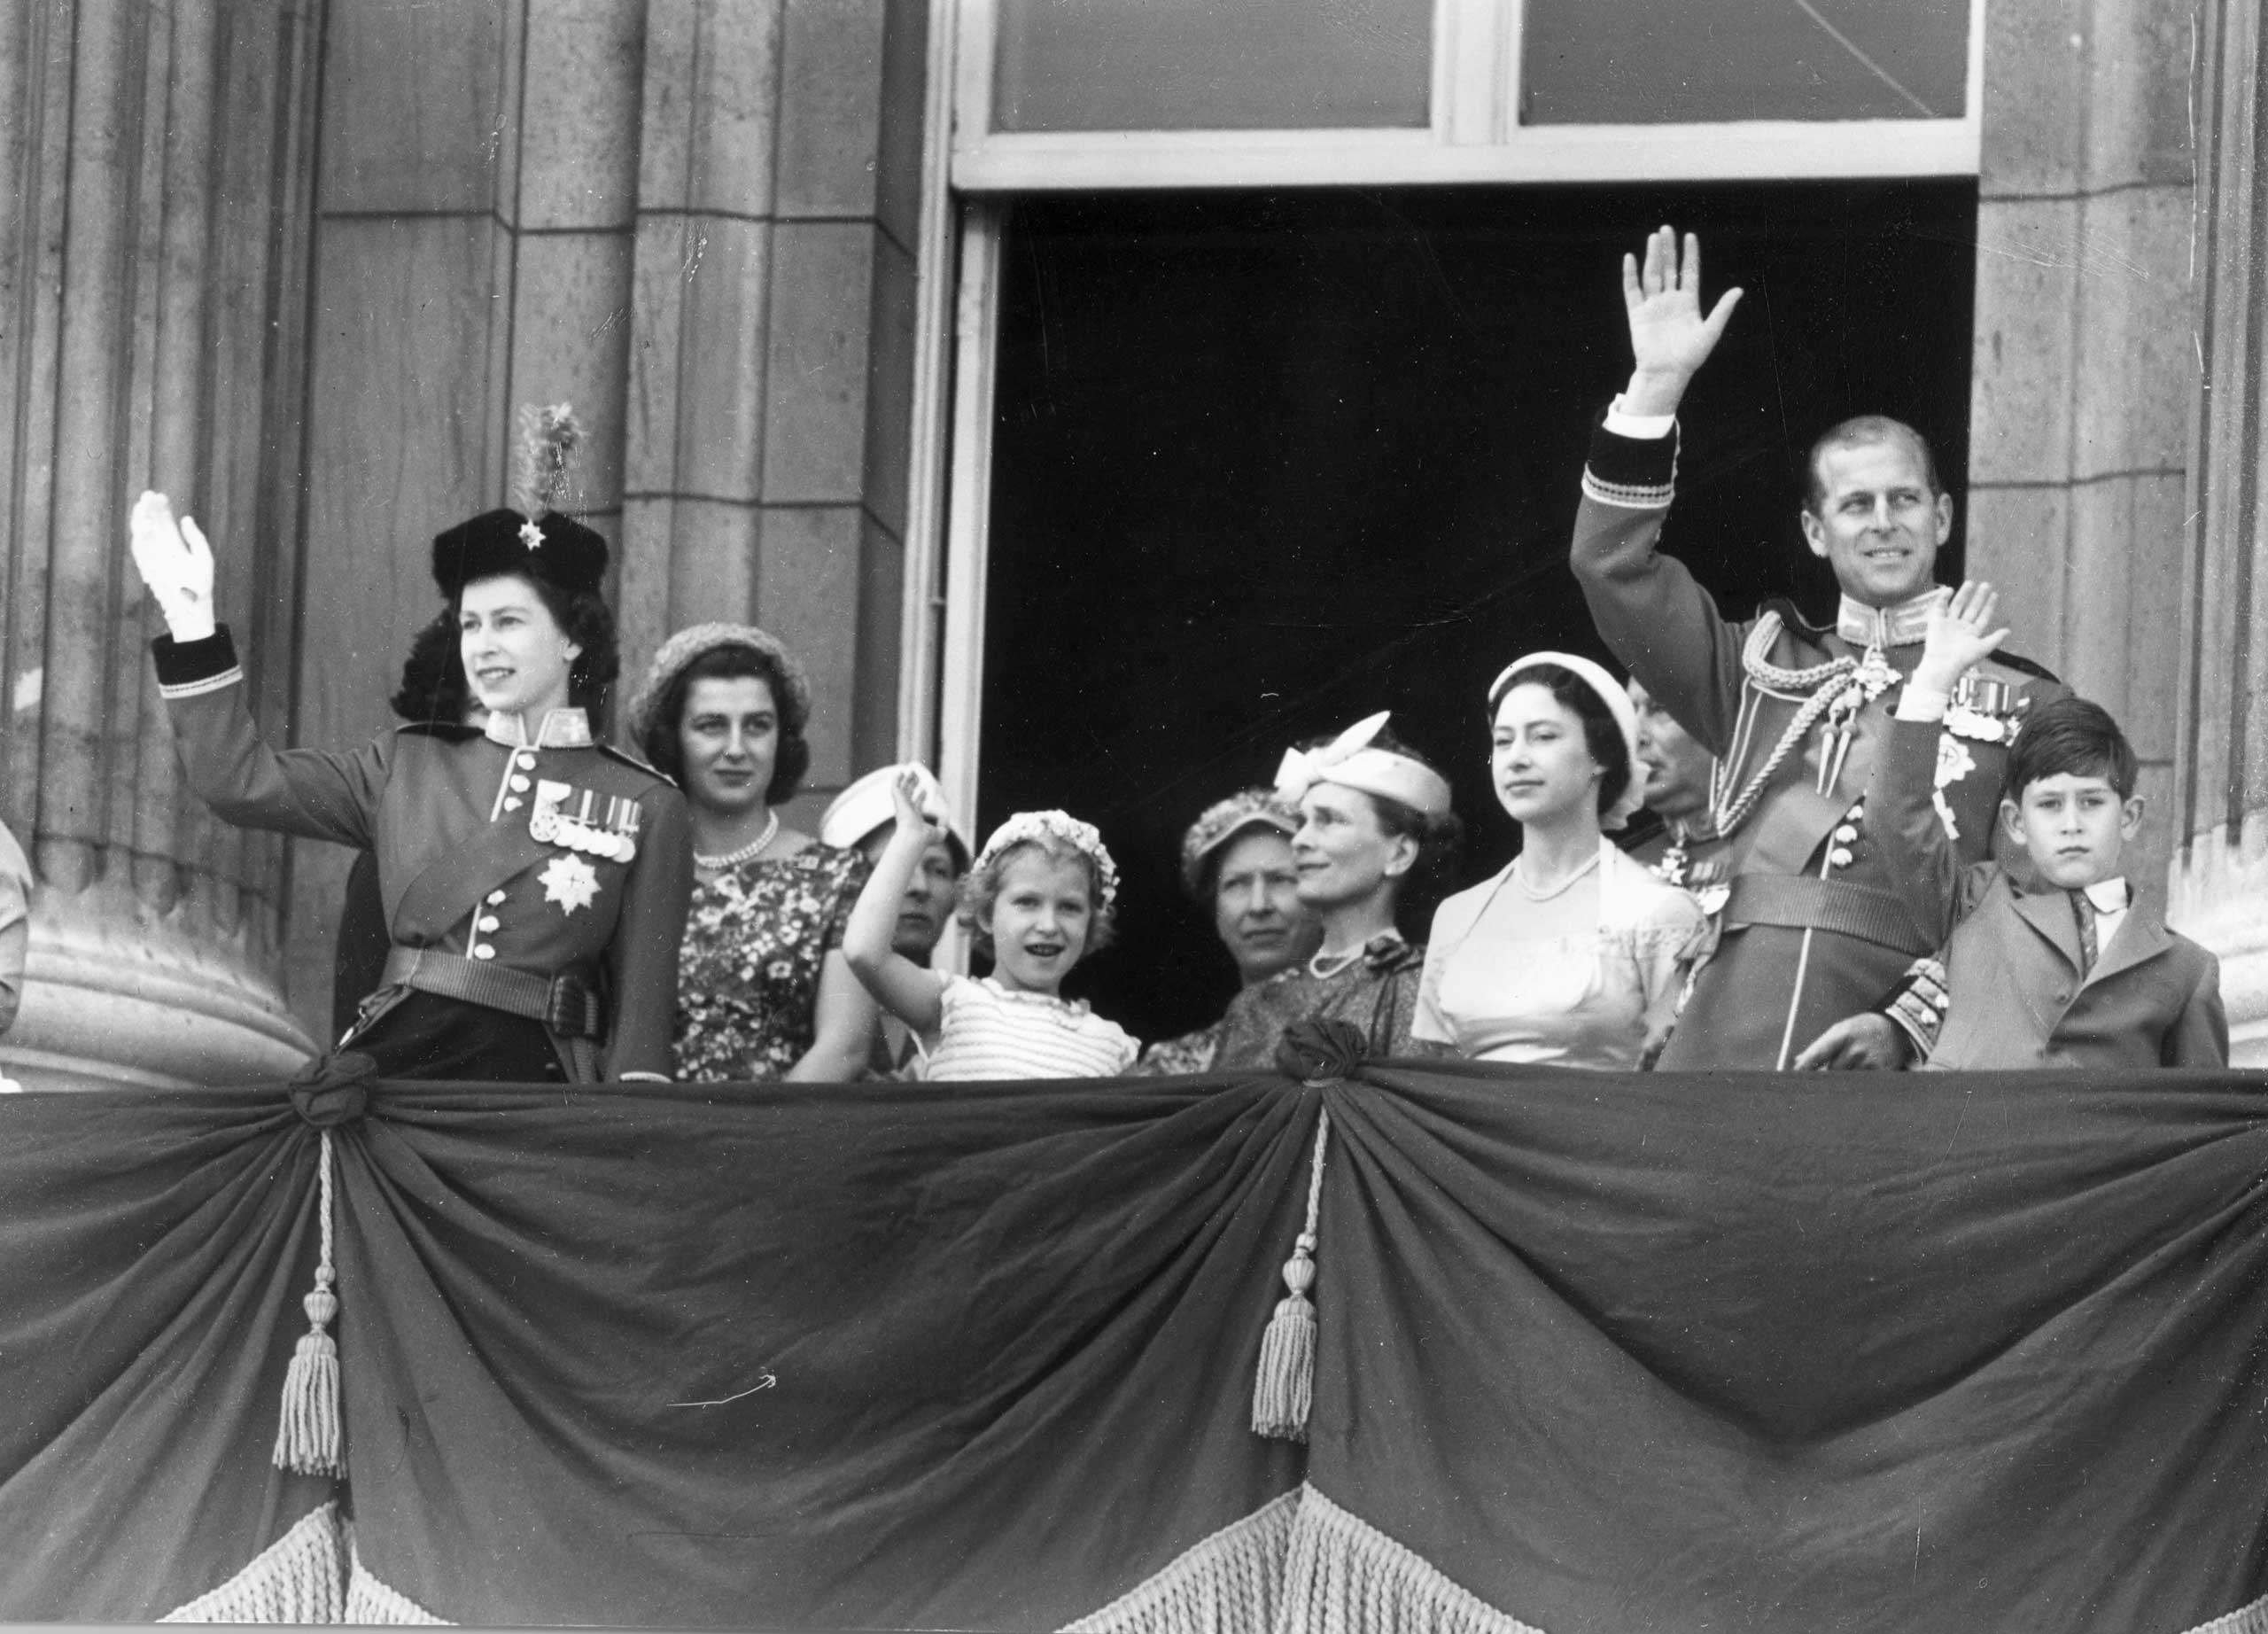 The royal family gathers on the balcony of Buckingham Palace to watch the Trooping the Colour ceremony on the Queen's official birthday in June 1957.